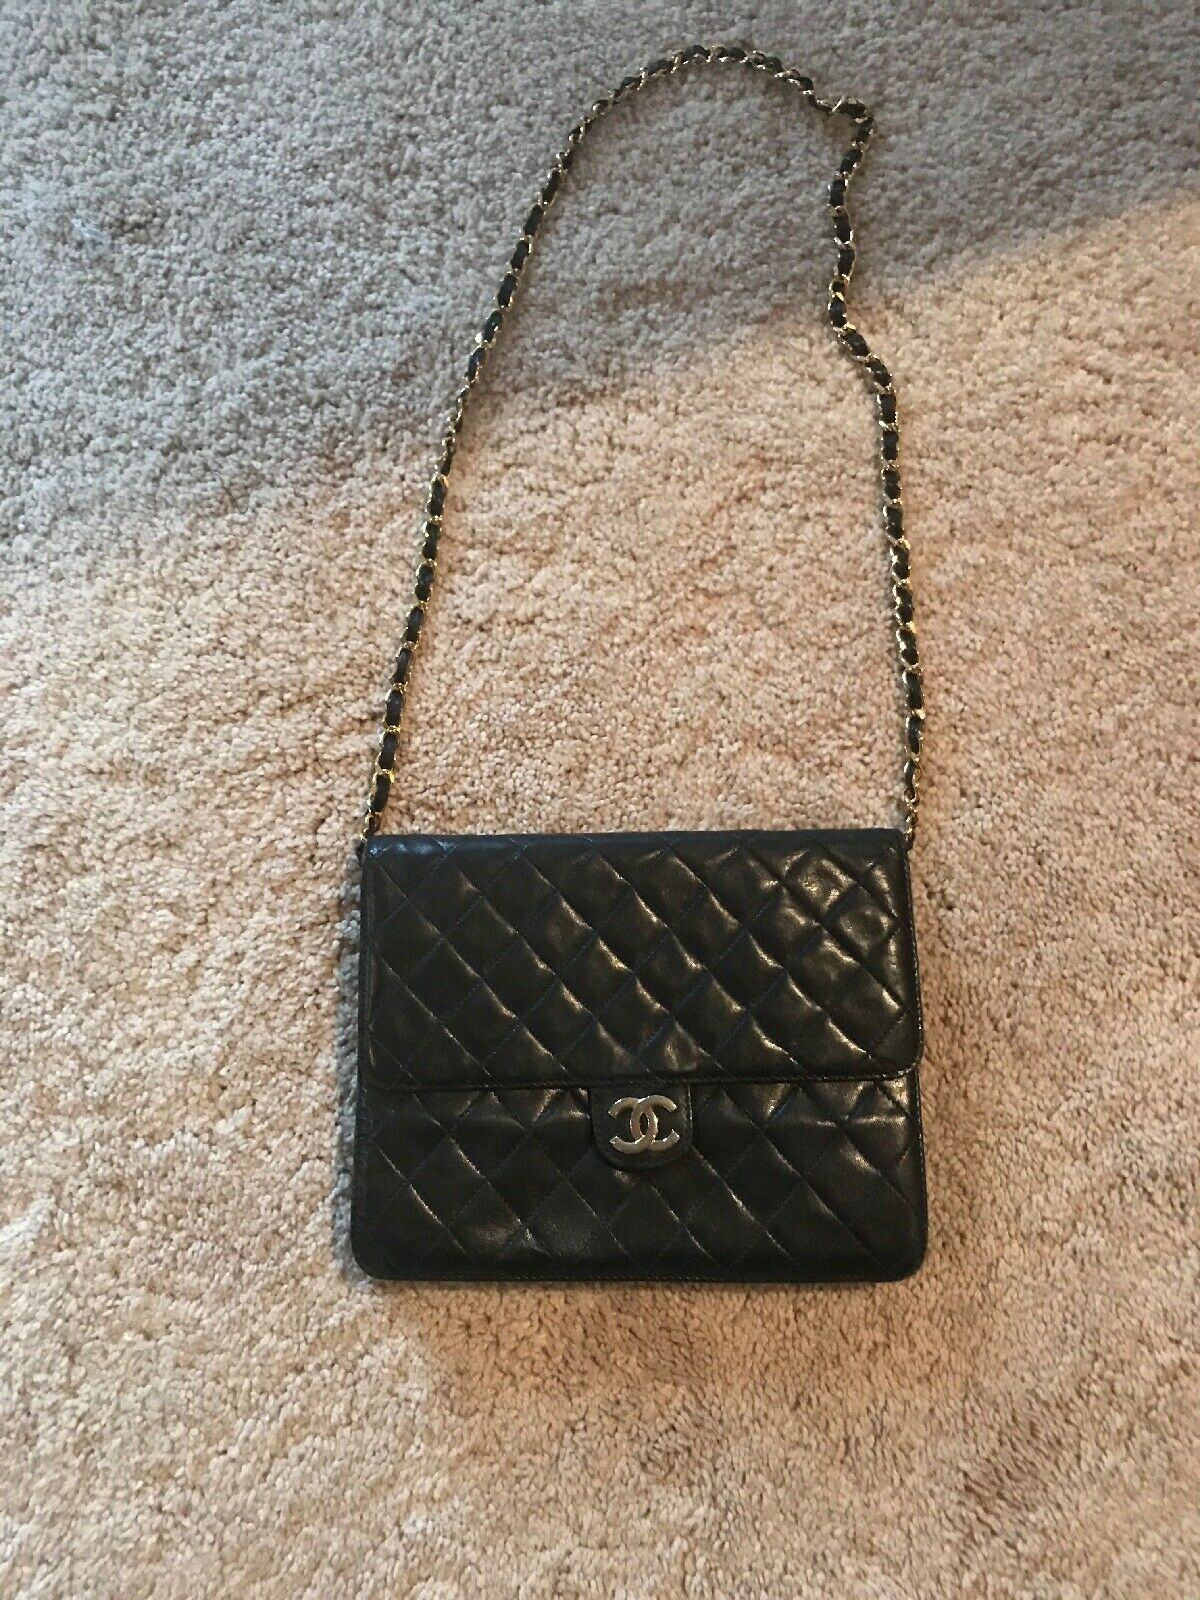 Vintage Chanel Quilted Purse Luxurybags Chanel Chanelhandbags Quilted Leather Tote New Chanel Bags Quilted Purses